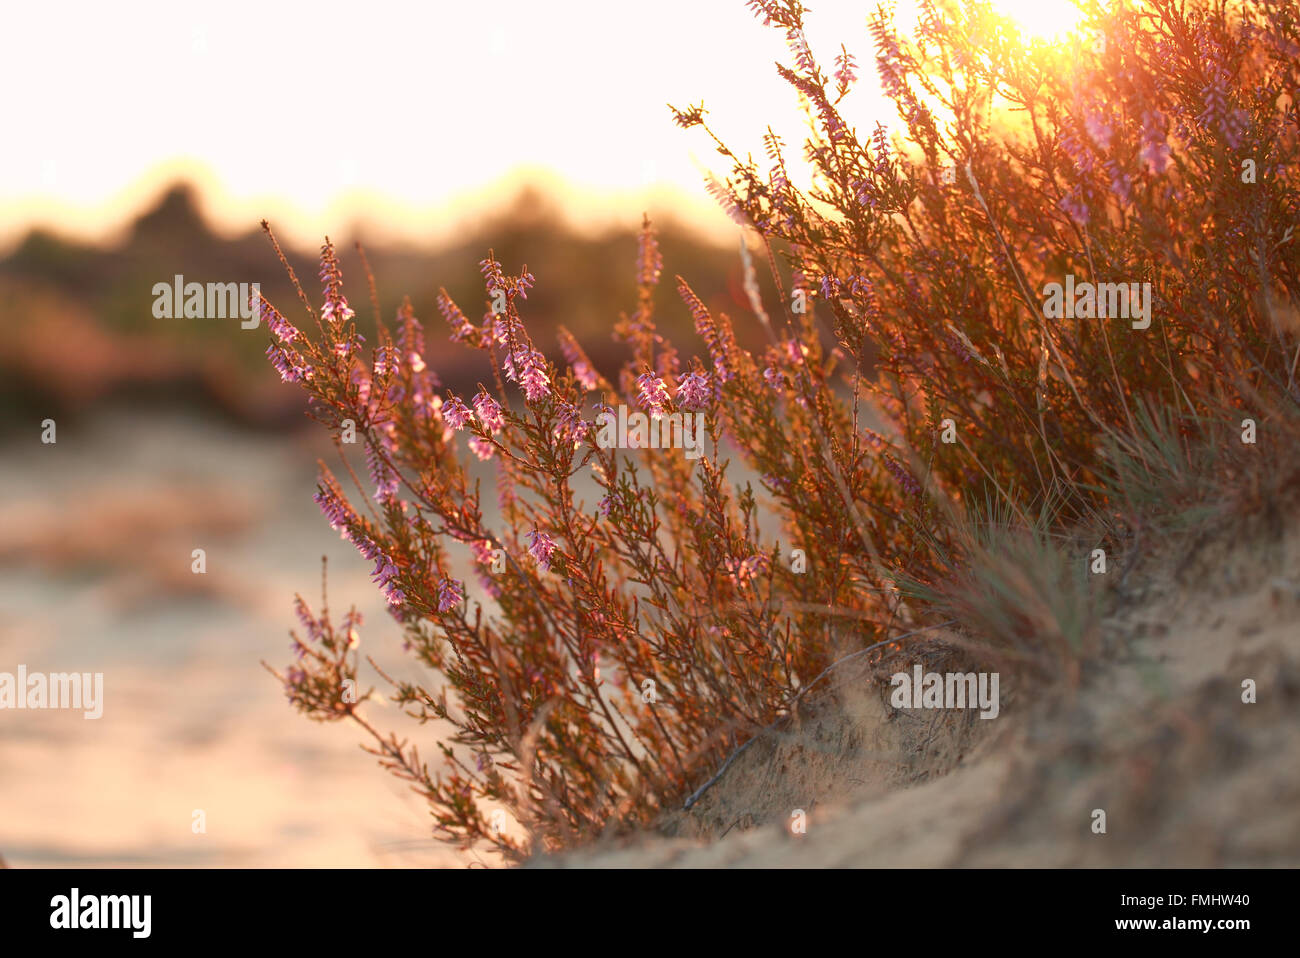 heather flowers on sand hill at gold sunset - Stock Image